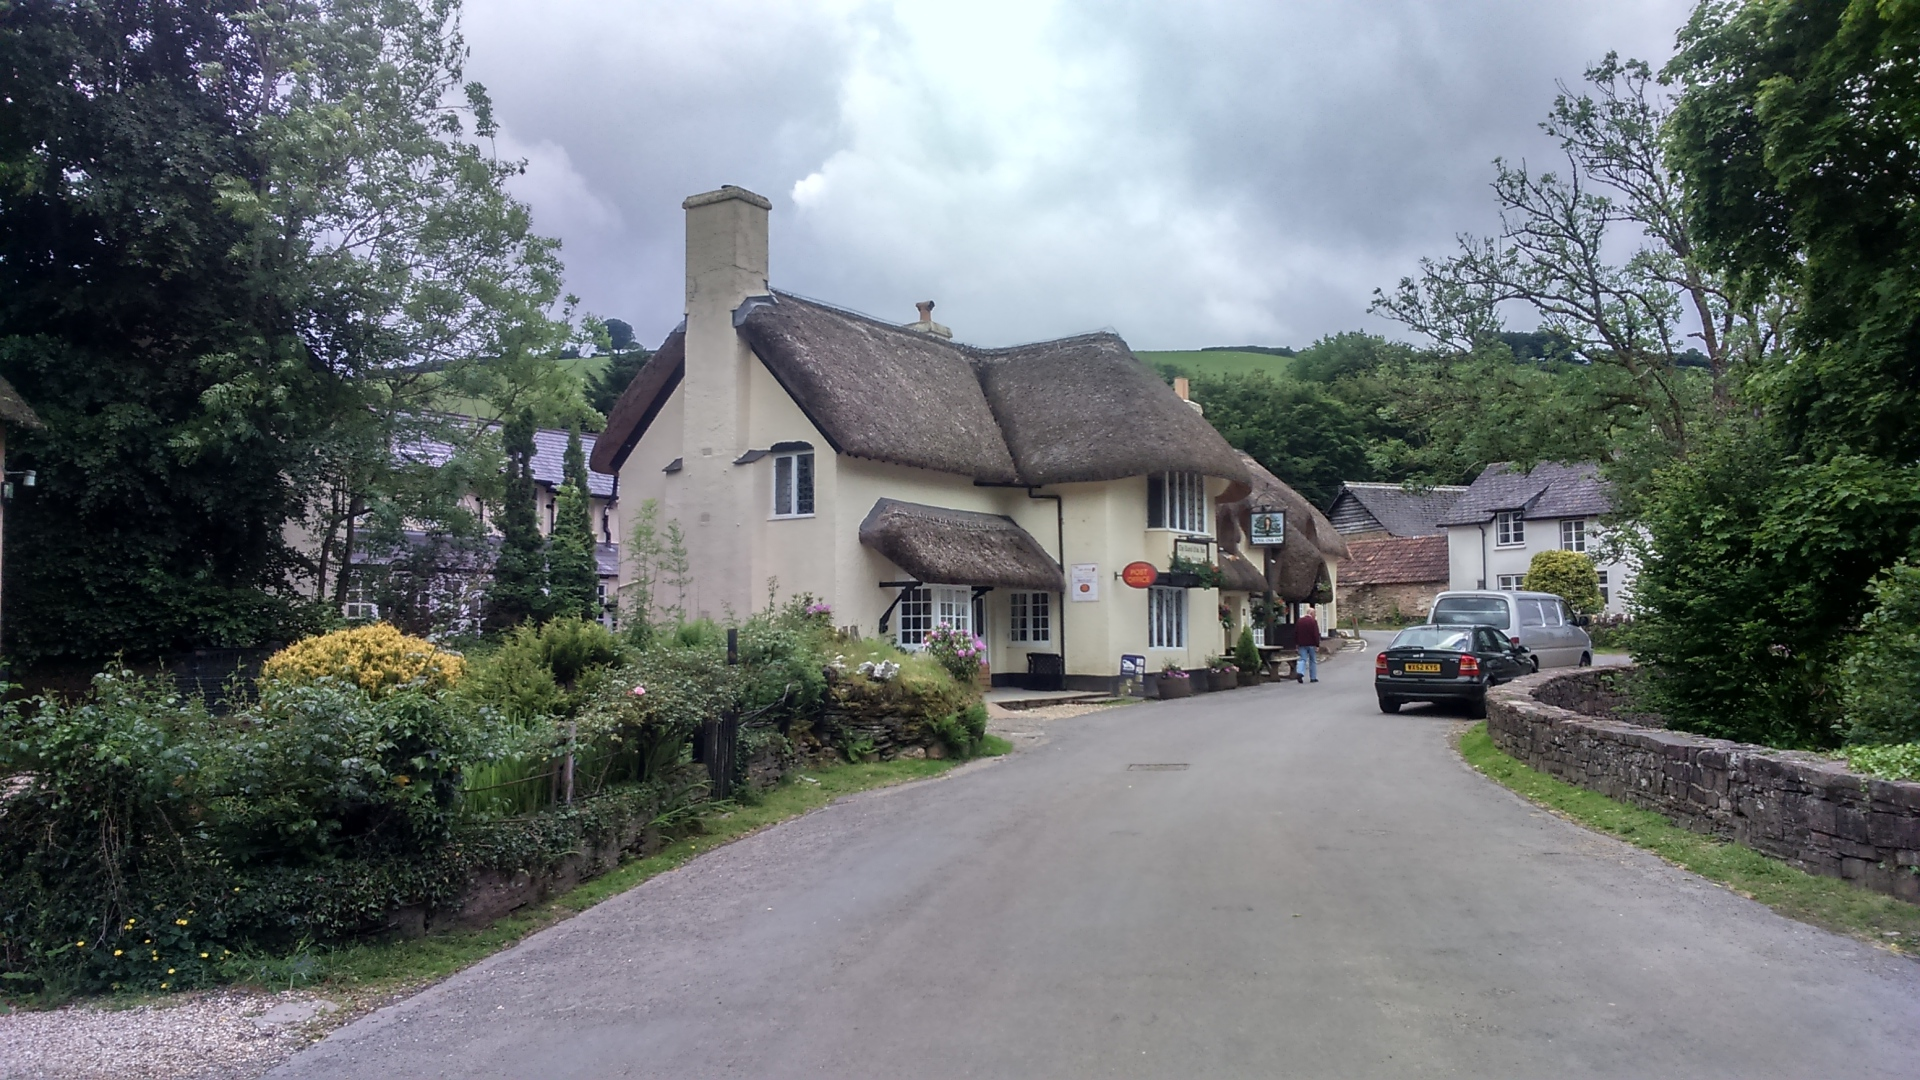 somerset, dunster, beach, hut, salad, days, Thatched cottages, Winsford, Exmoor